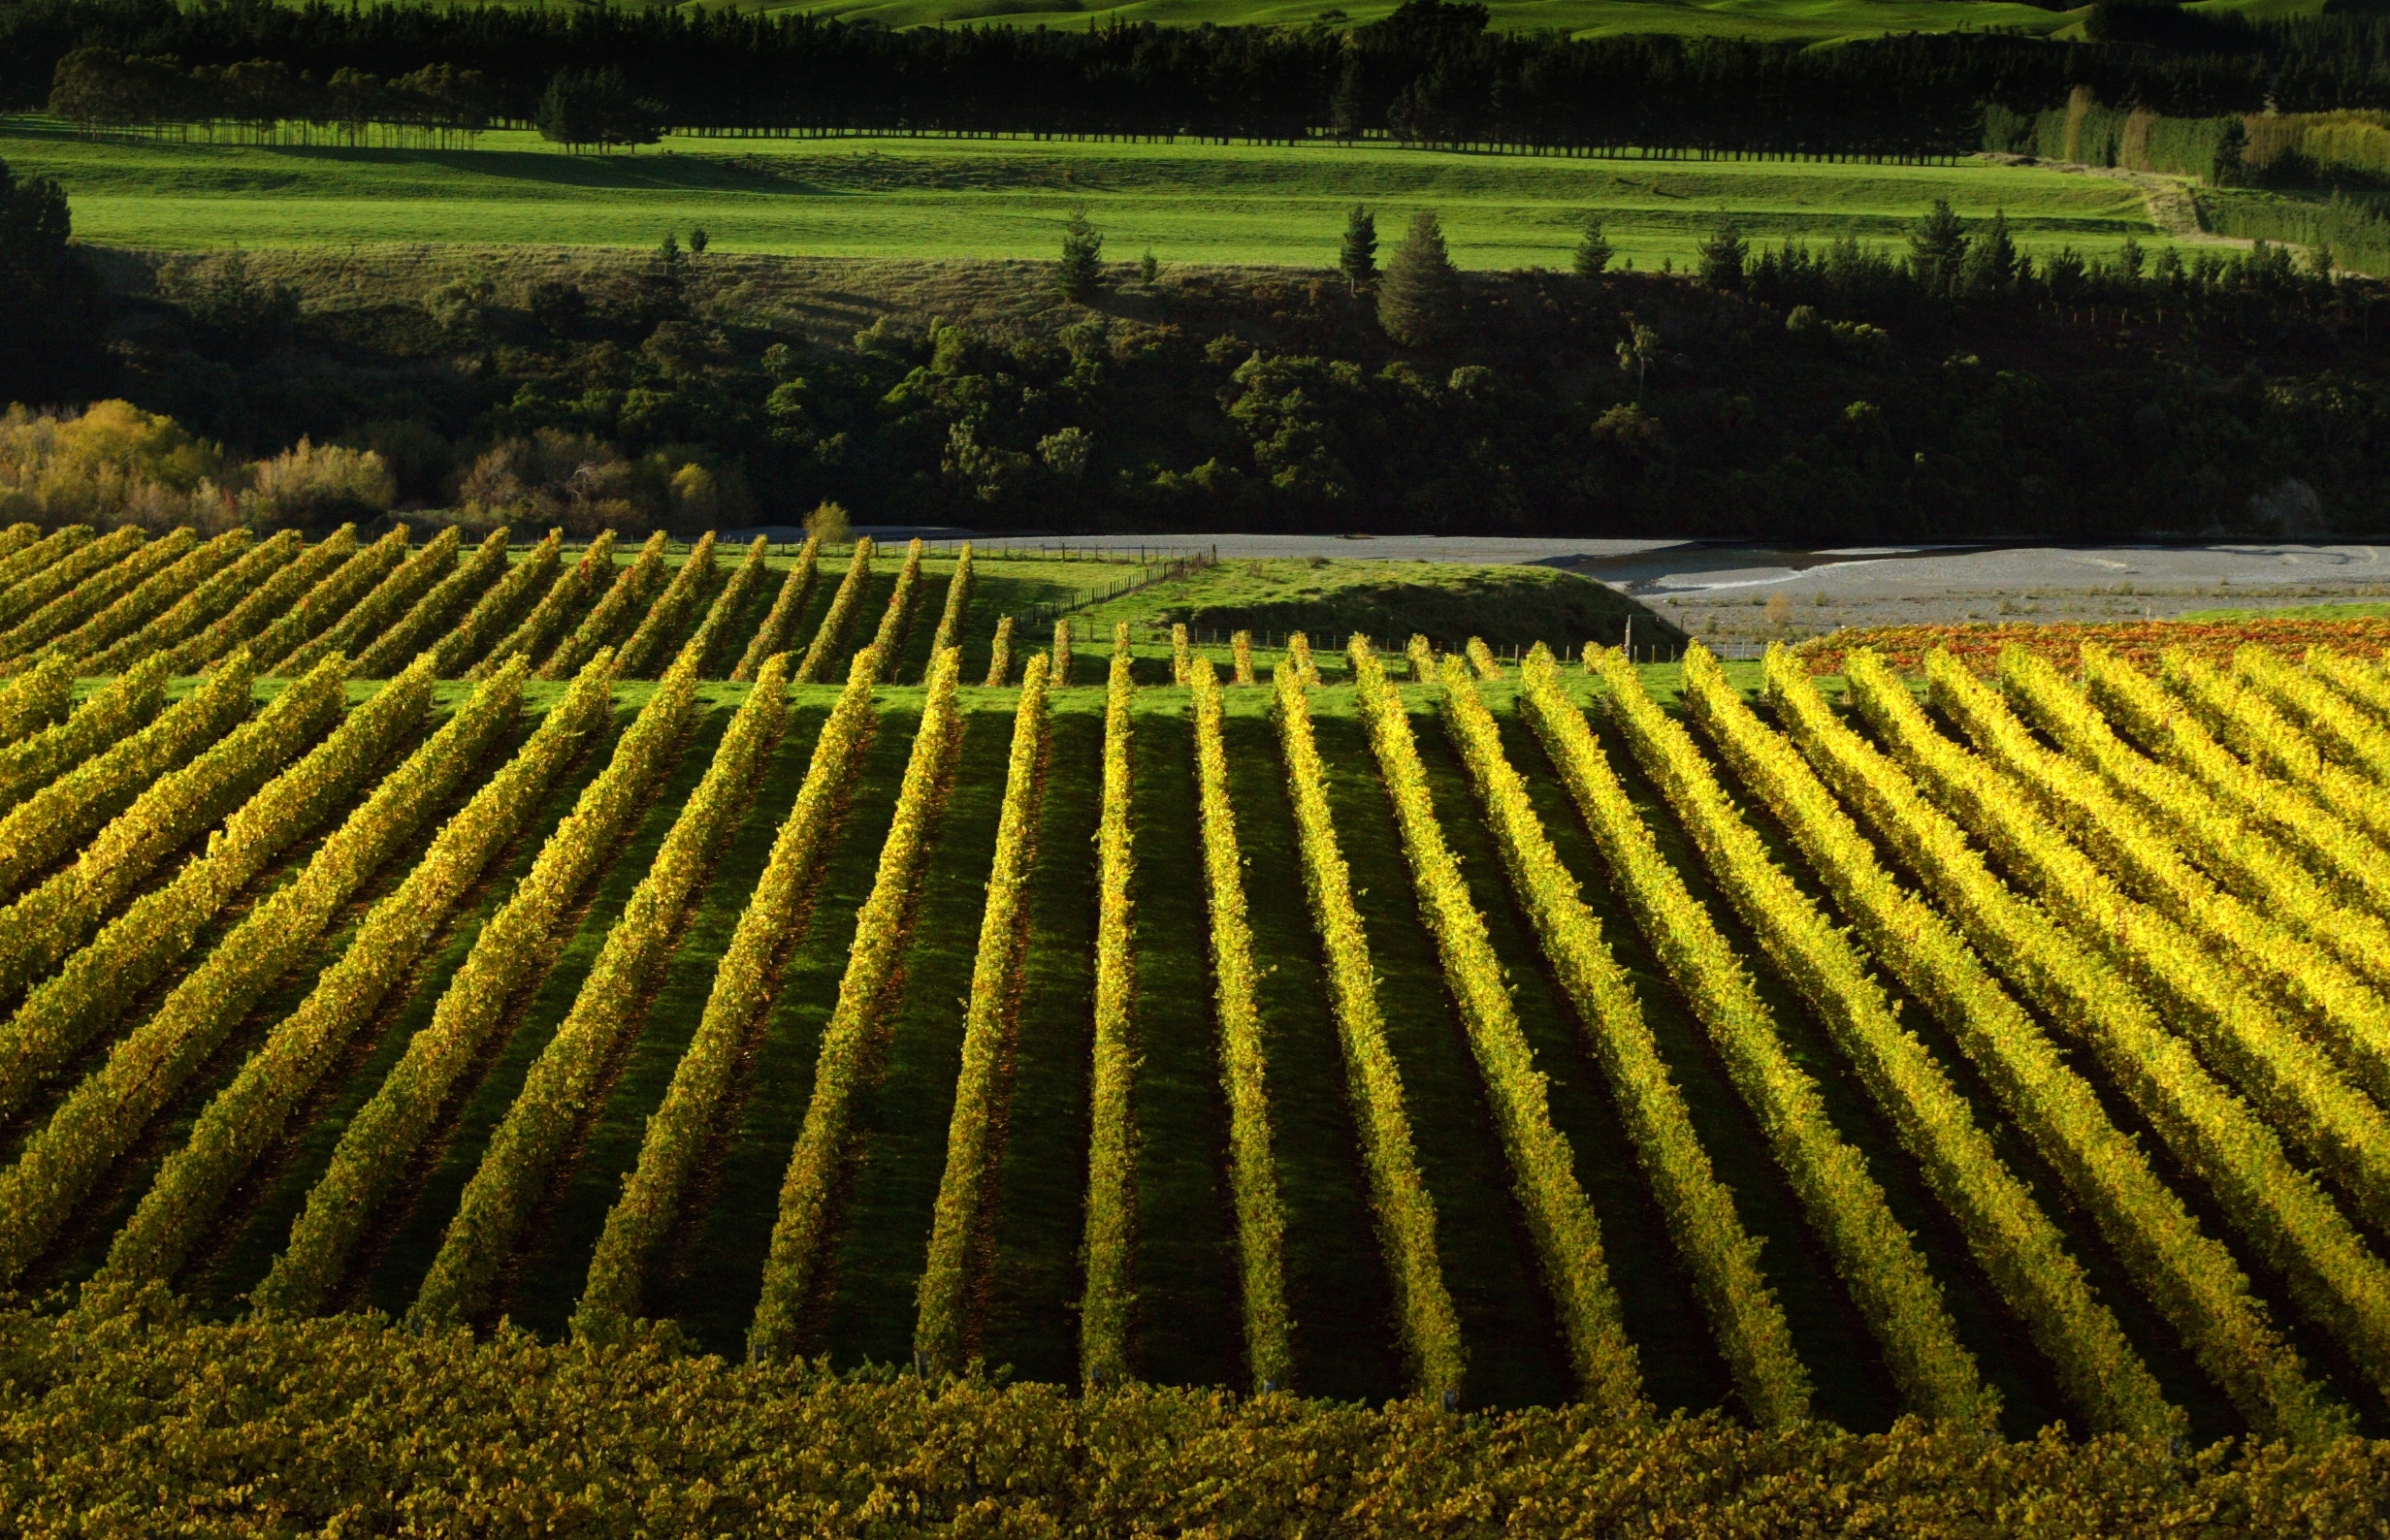 Autumn Colours Feature Mangatahi vineyards surrender to Autumn Colour. Rep - Pic By Warren Buckland Hawkes Bay Today - NAPIER NEWS FEATURE DIGITAL PHOTO